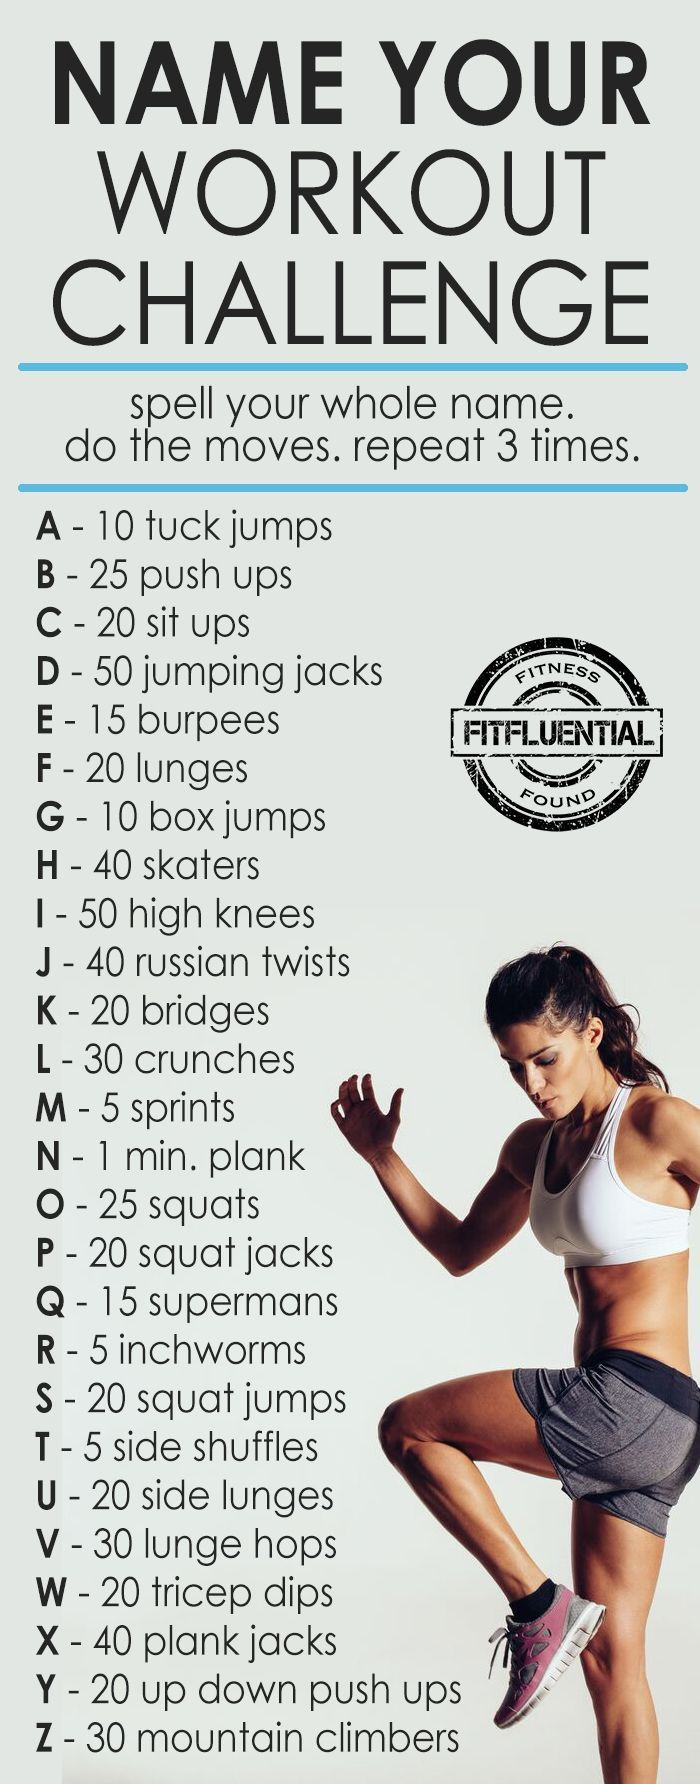 """Name"" Your workout challenge from FitFluential..."